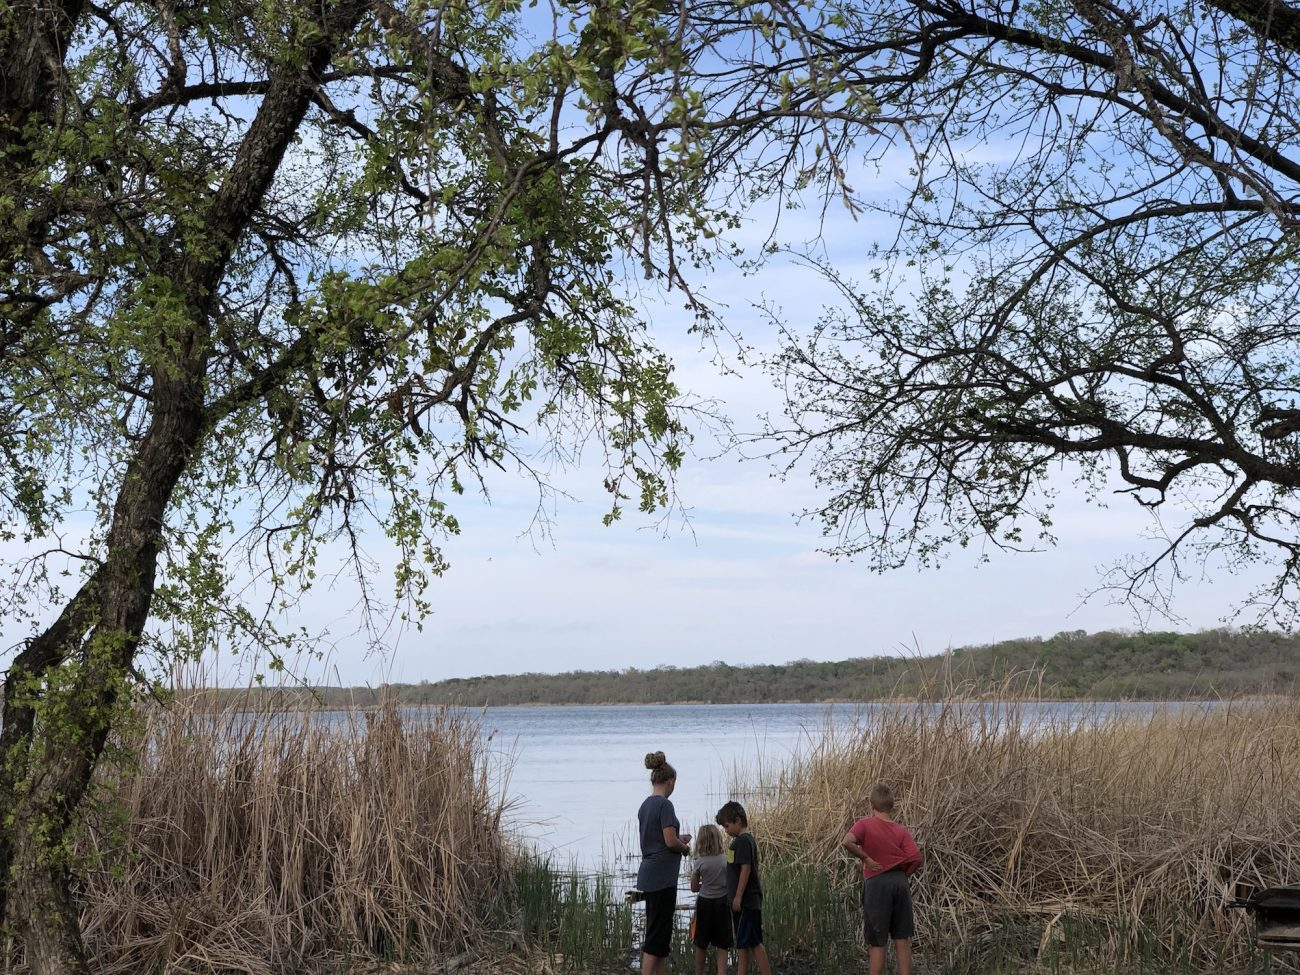 Our Campsite view at Lake Mineral Wells State Park